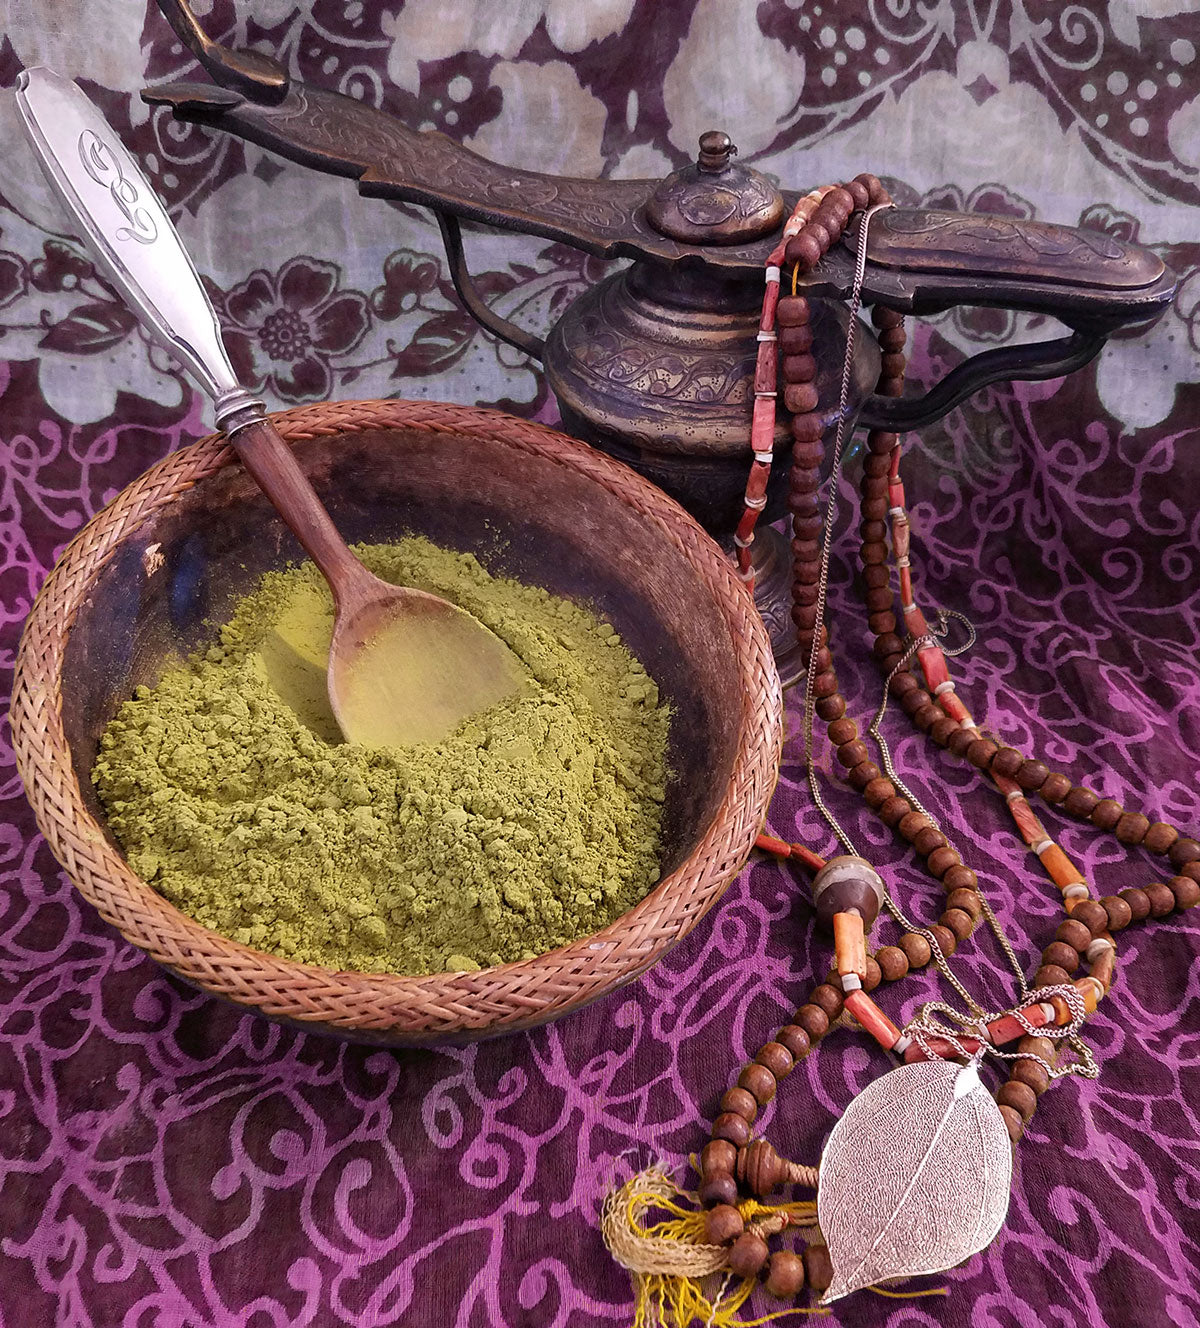 Henna powder from Morocco